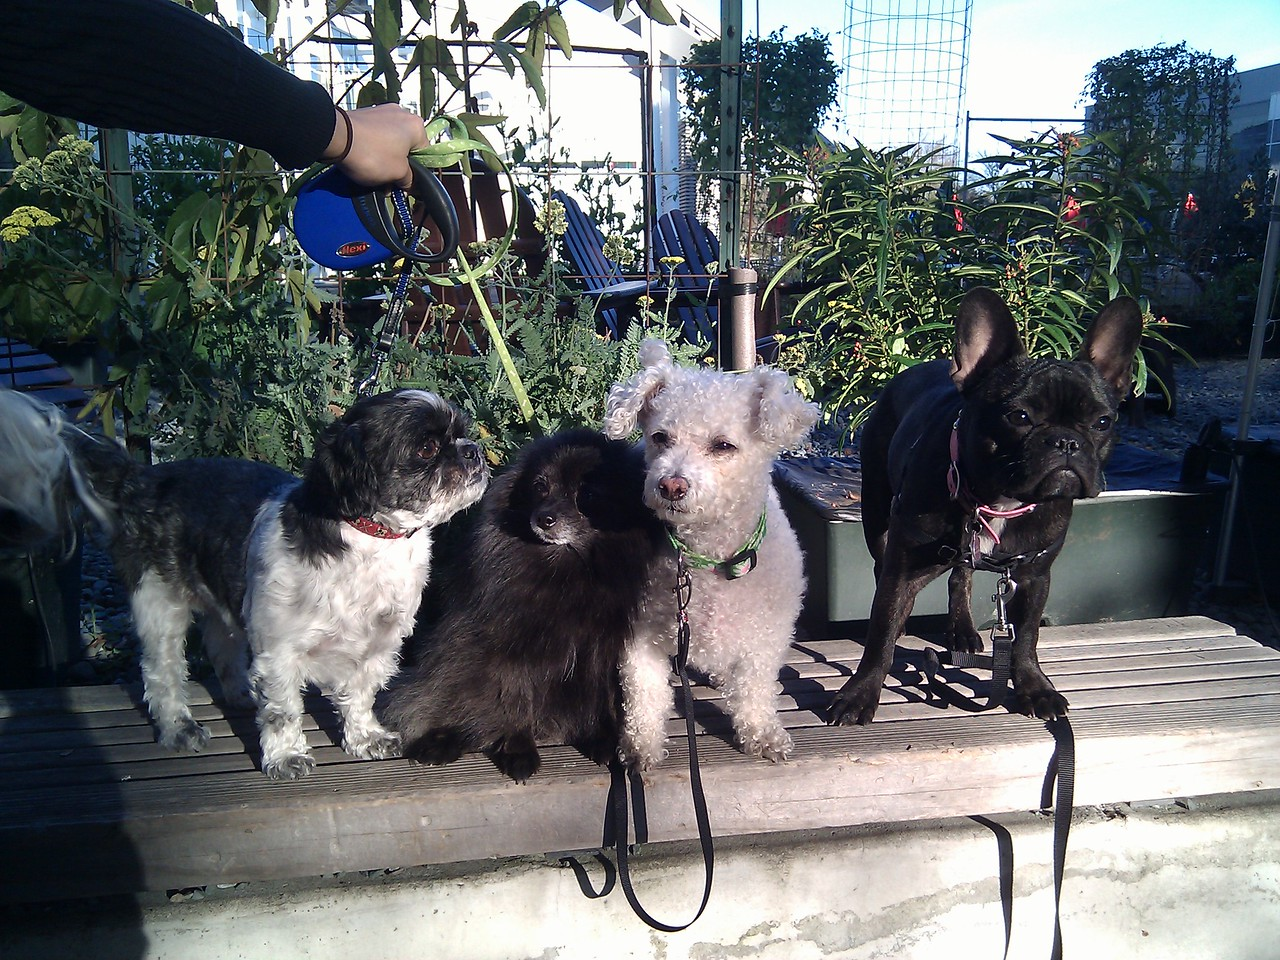 Google dogs: Snap, Mochi, Senna, Lola. Mountain View, 2/3/11.